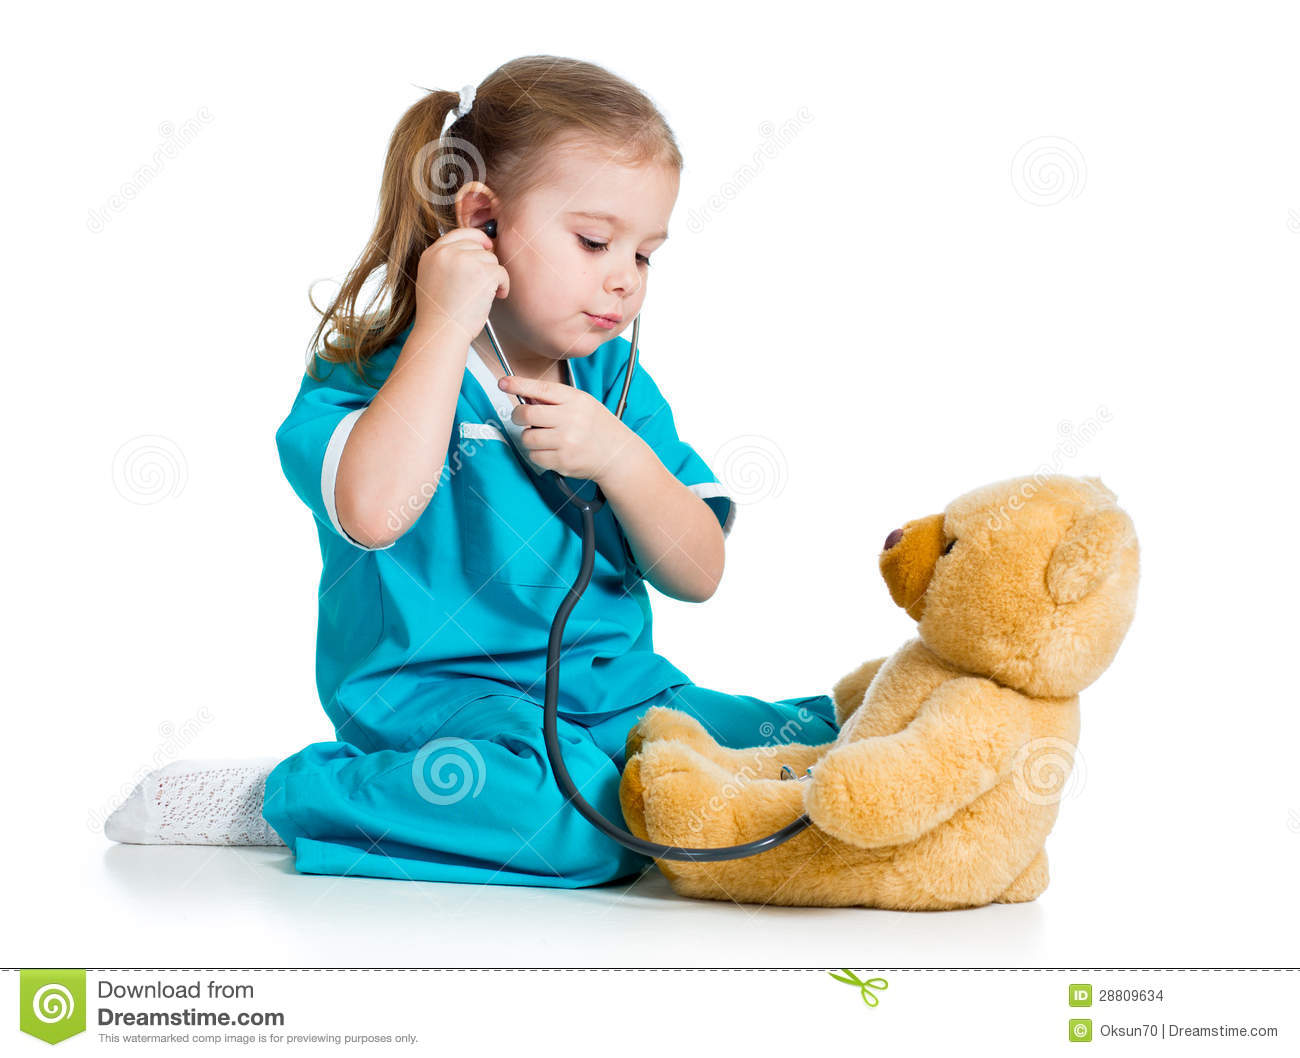 cute child with clothes of doctor examining teddy bear toy stock